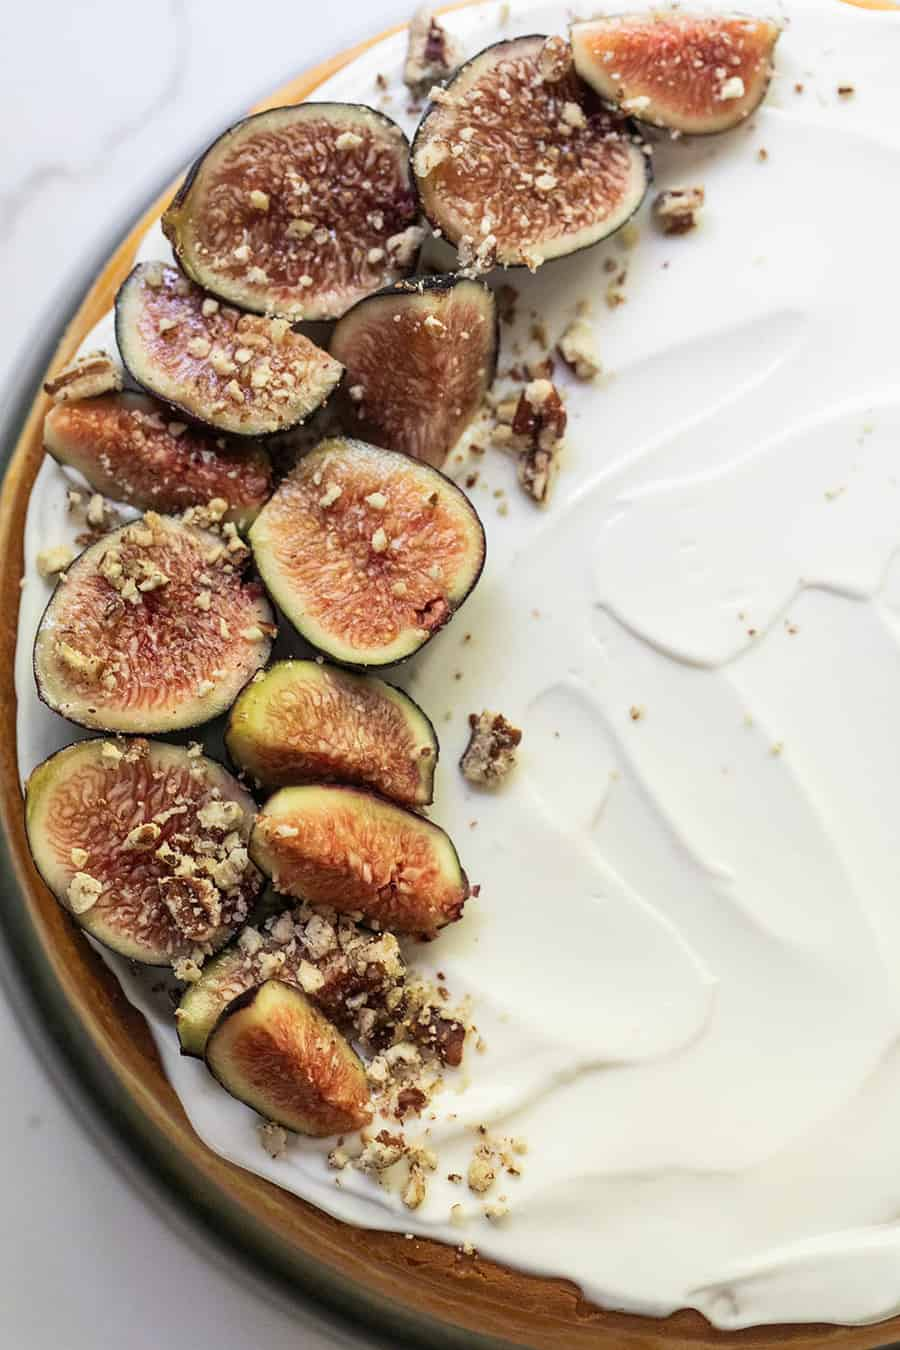 Cheesecake recipe with figs and a sour cream frosting